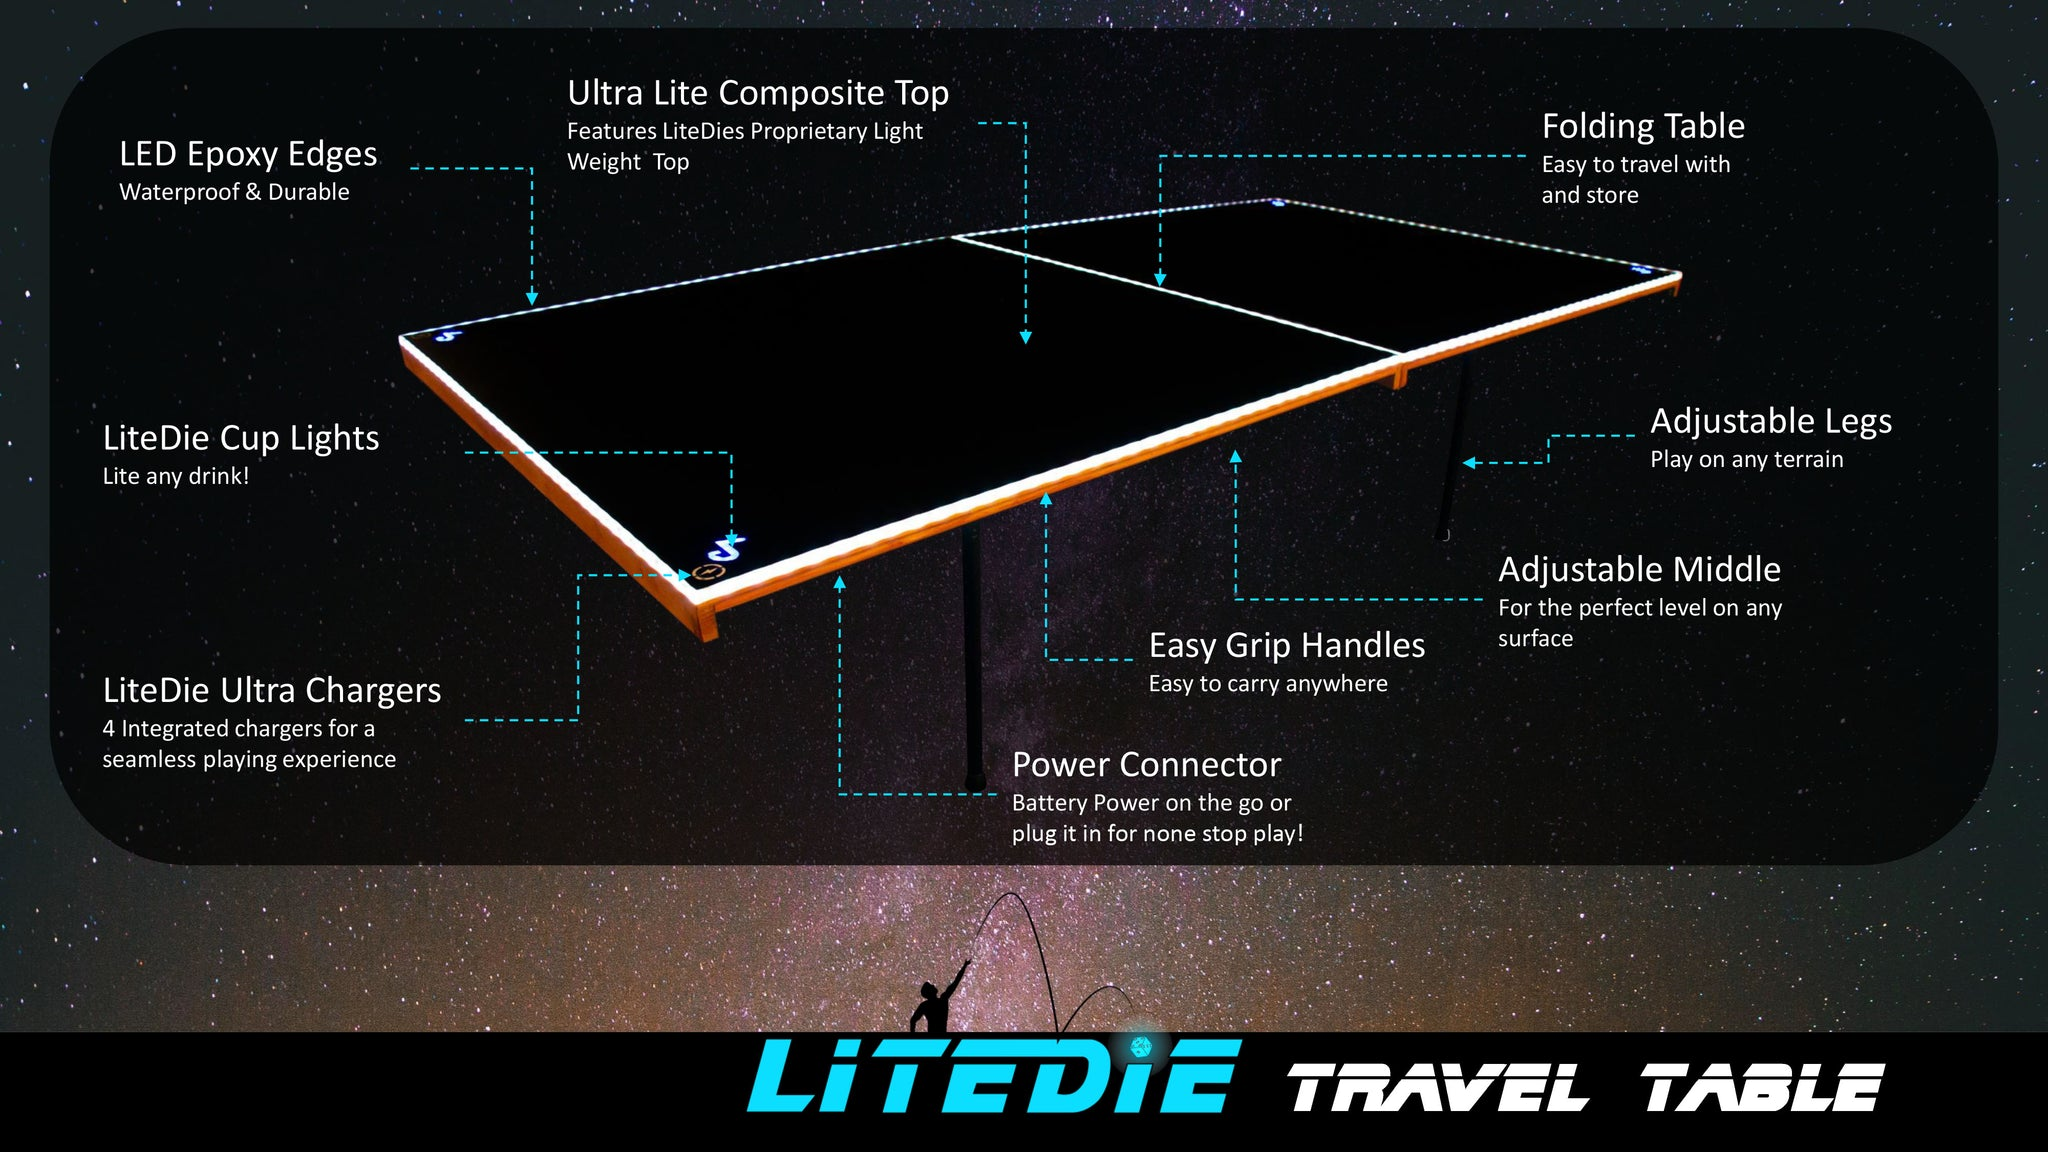 Travel Table Diagram